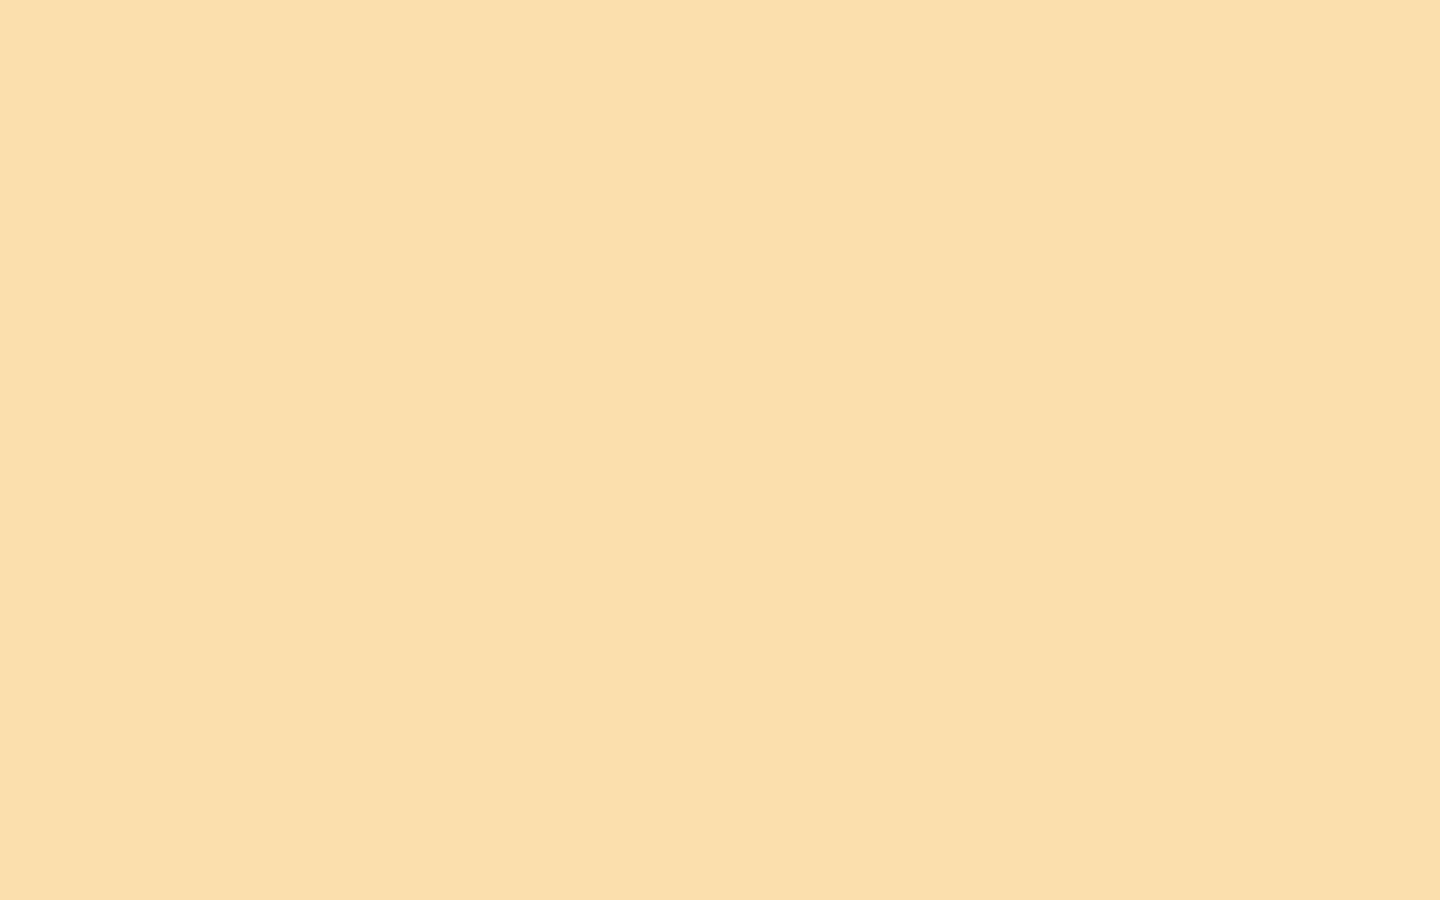 1440x900 Peach-yellow Solid Color Background